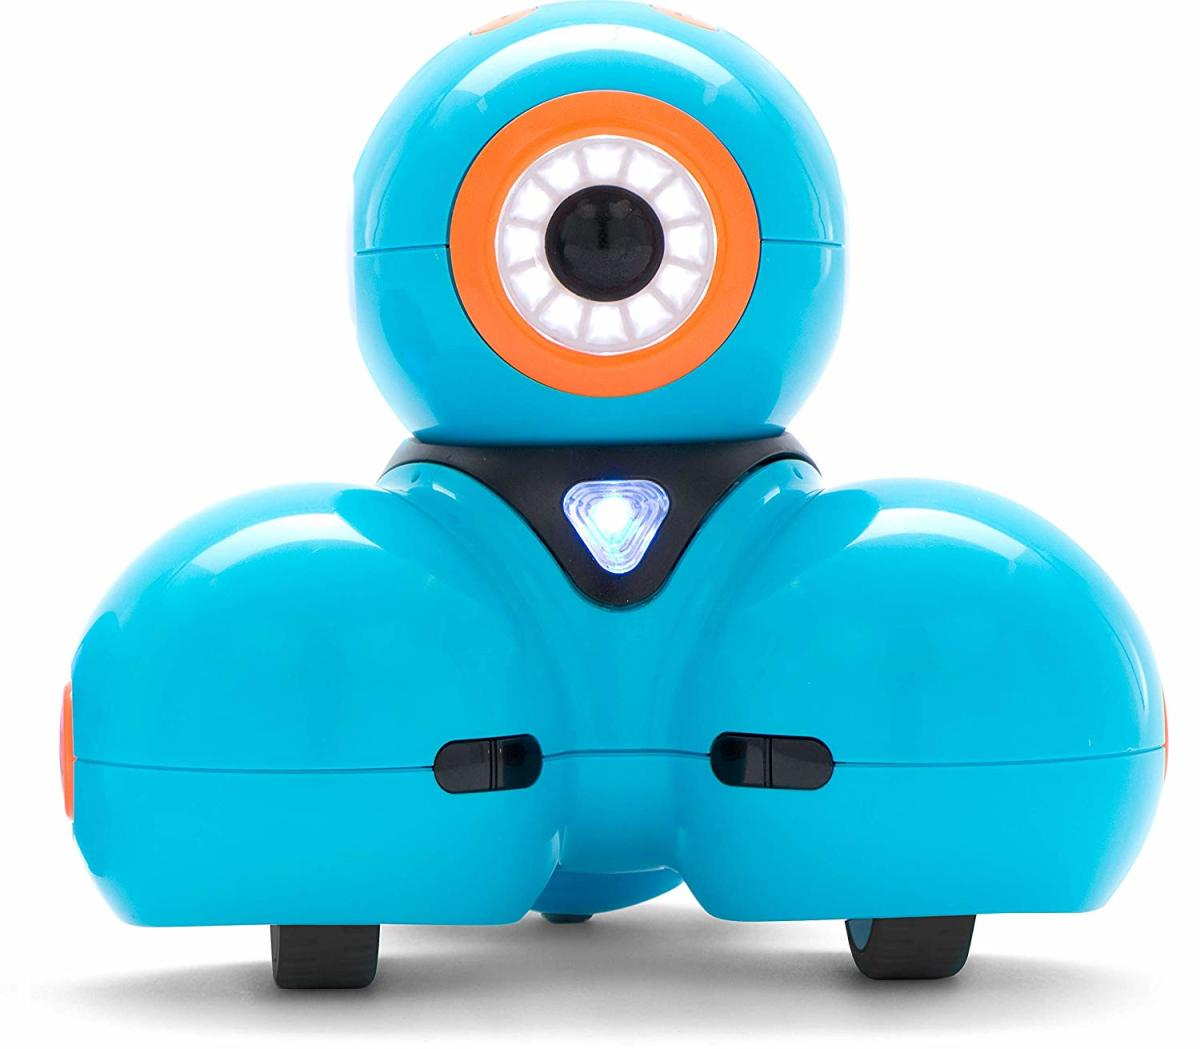 Dash is a cute and educational robot companion